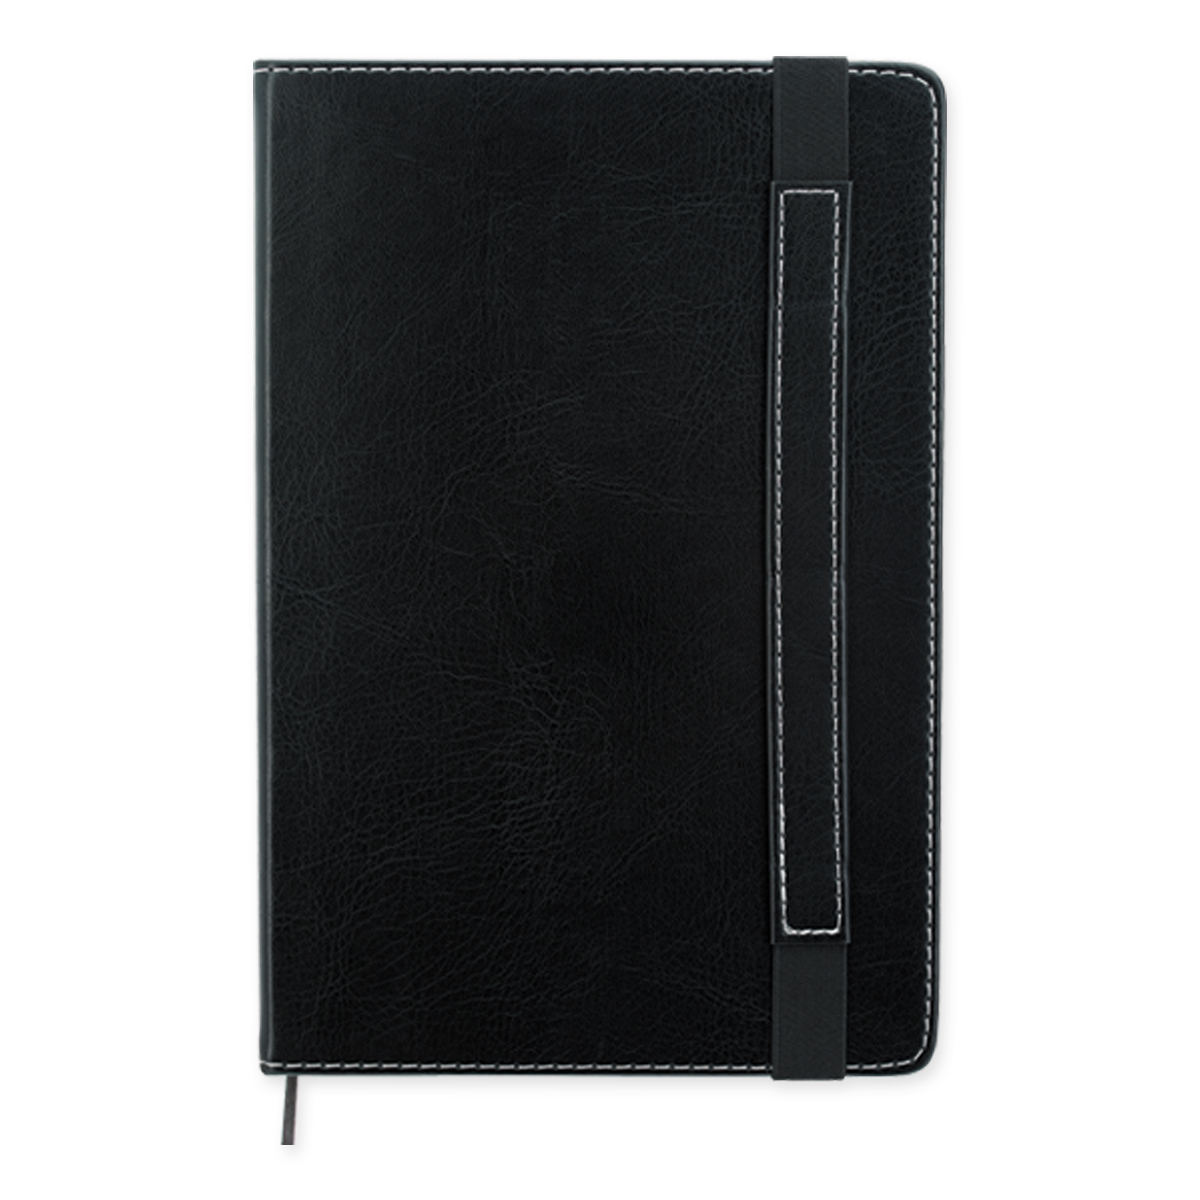 #CM 6913 Charlotte Journal Notebook